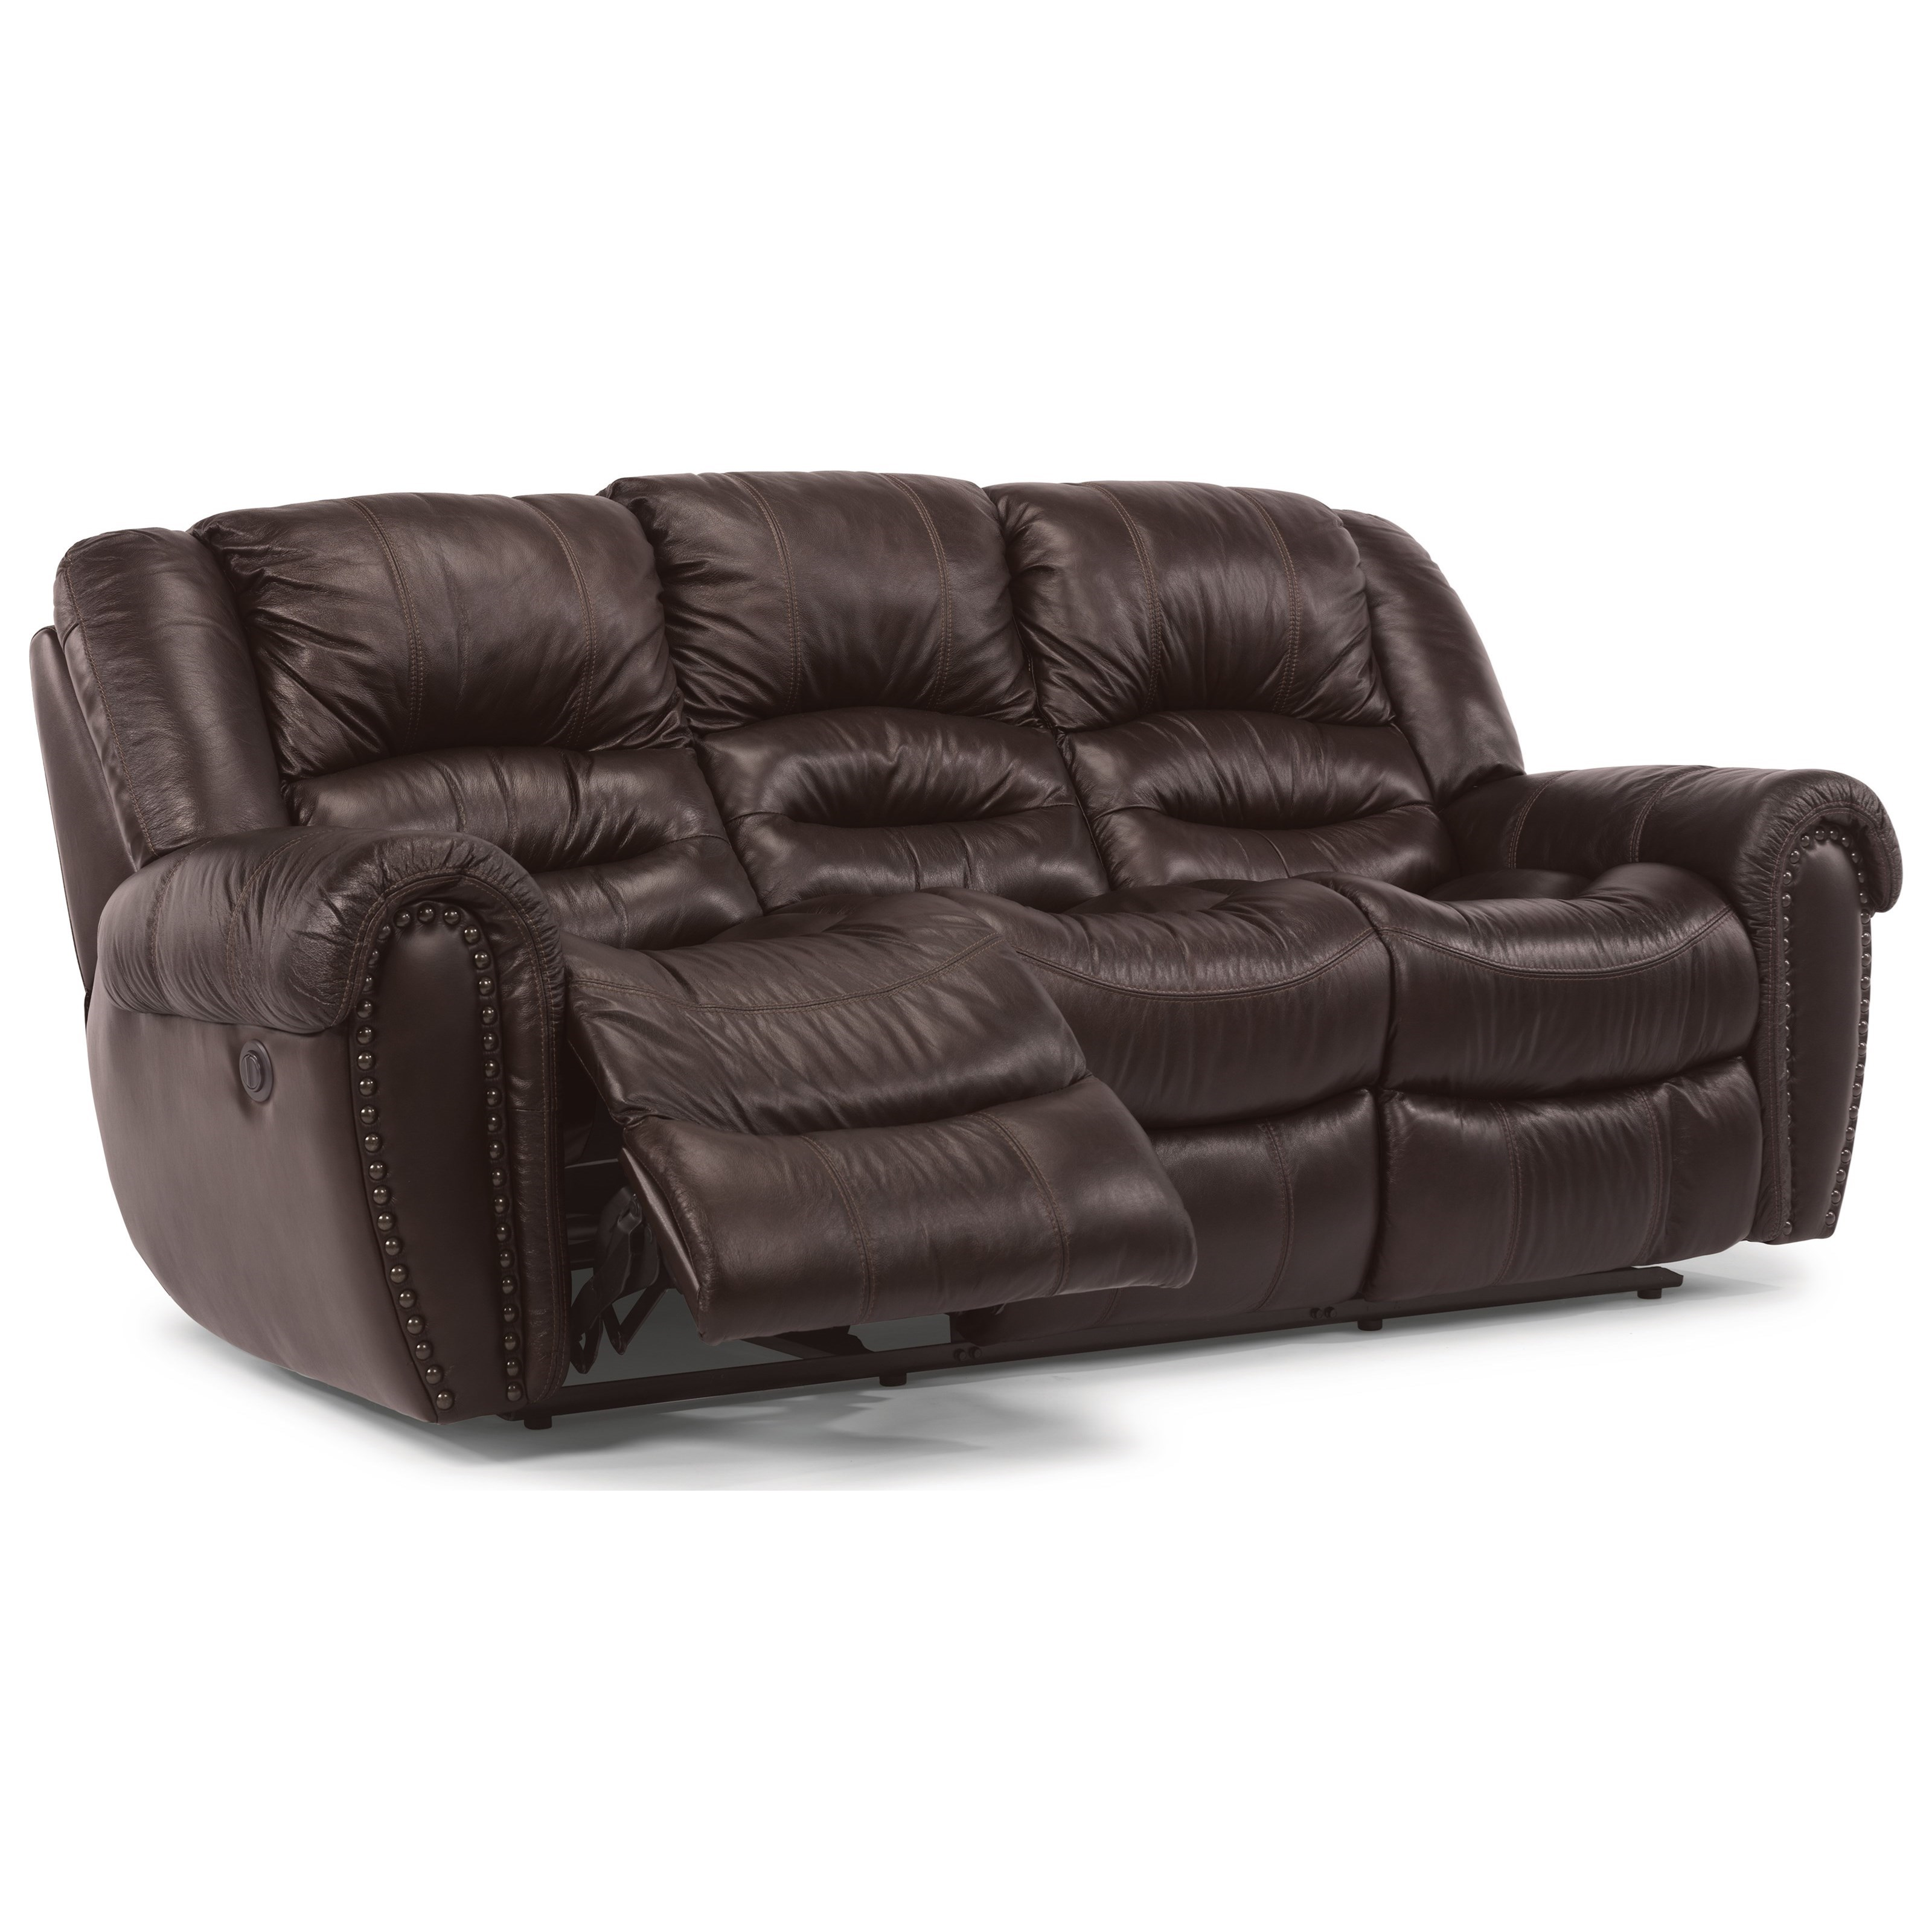 Flexsteel Sofa Bed Mattress: Flexsteel Crosstown Reclining Sofa